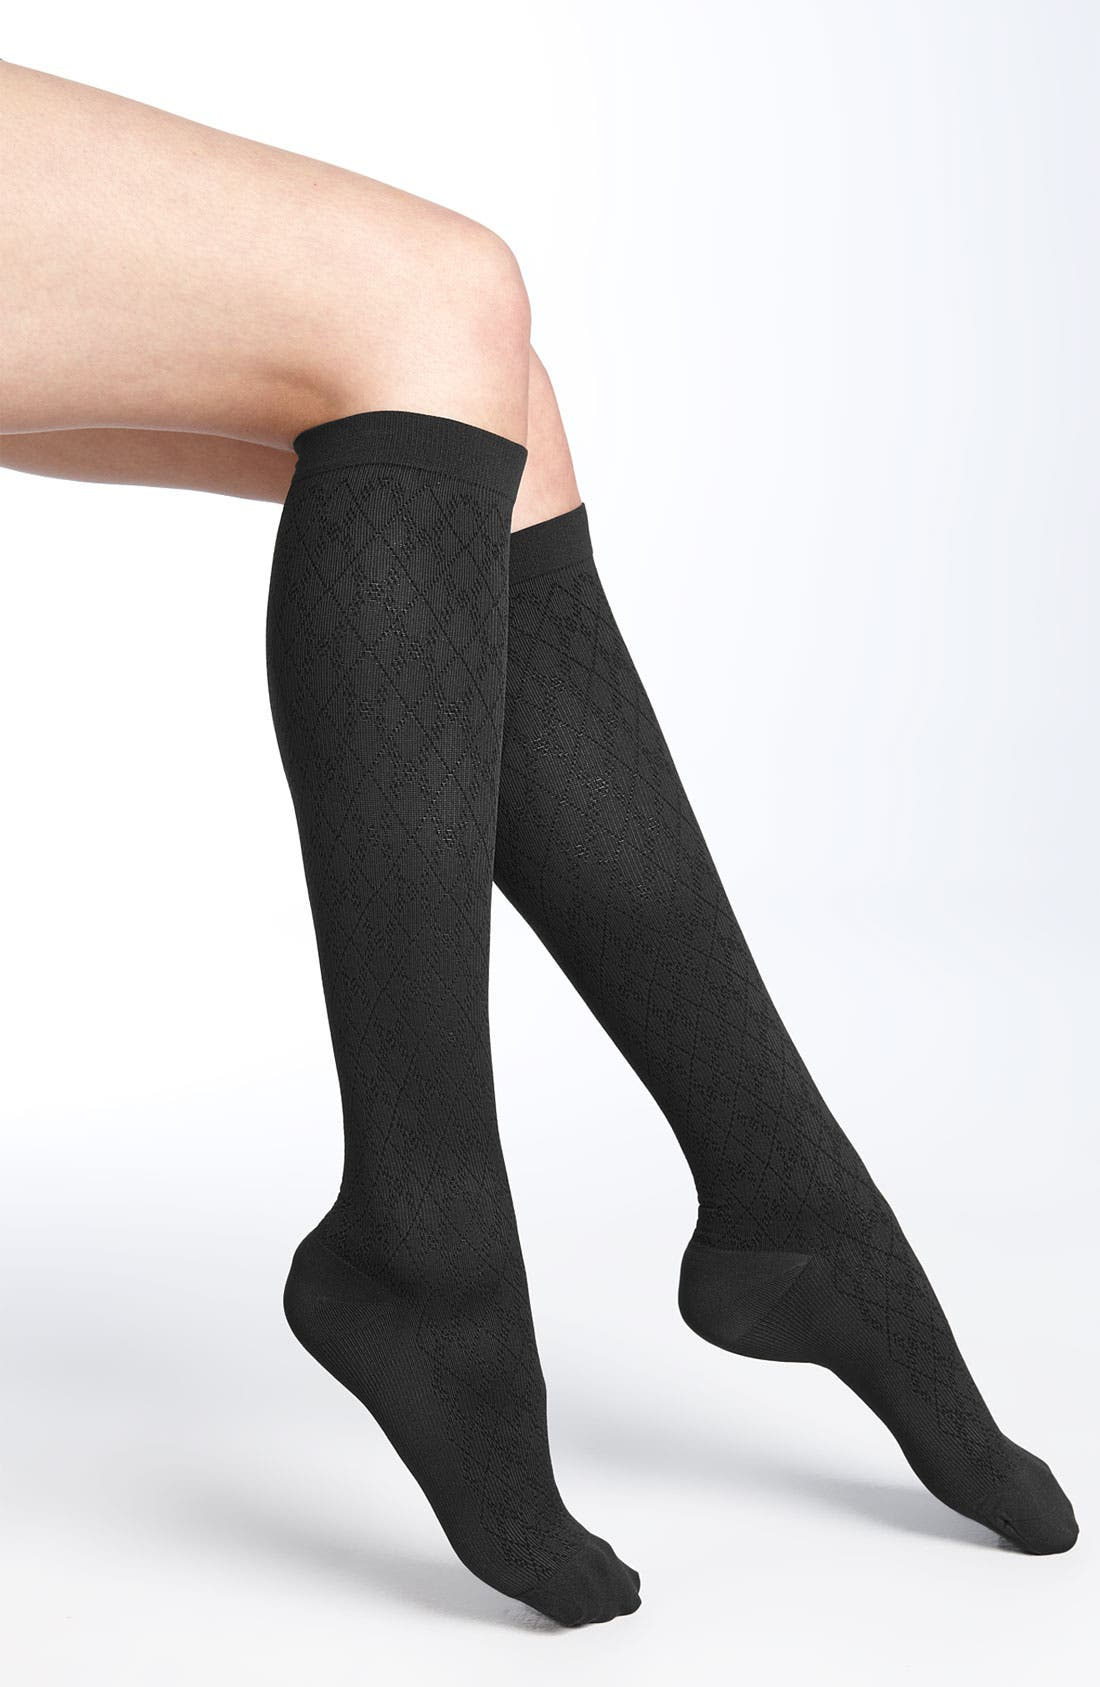 Main Image - Nordstrom 'Diamond' Compression Trouser Socks (3 for $36)